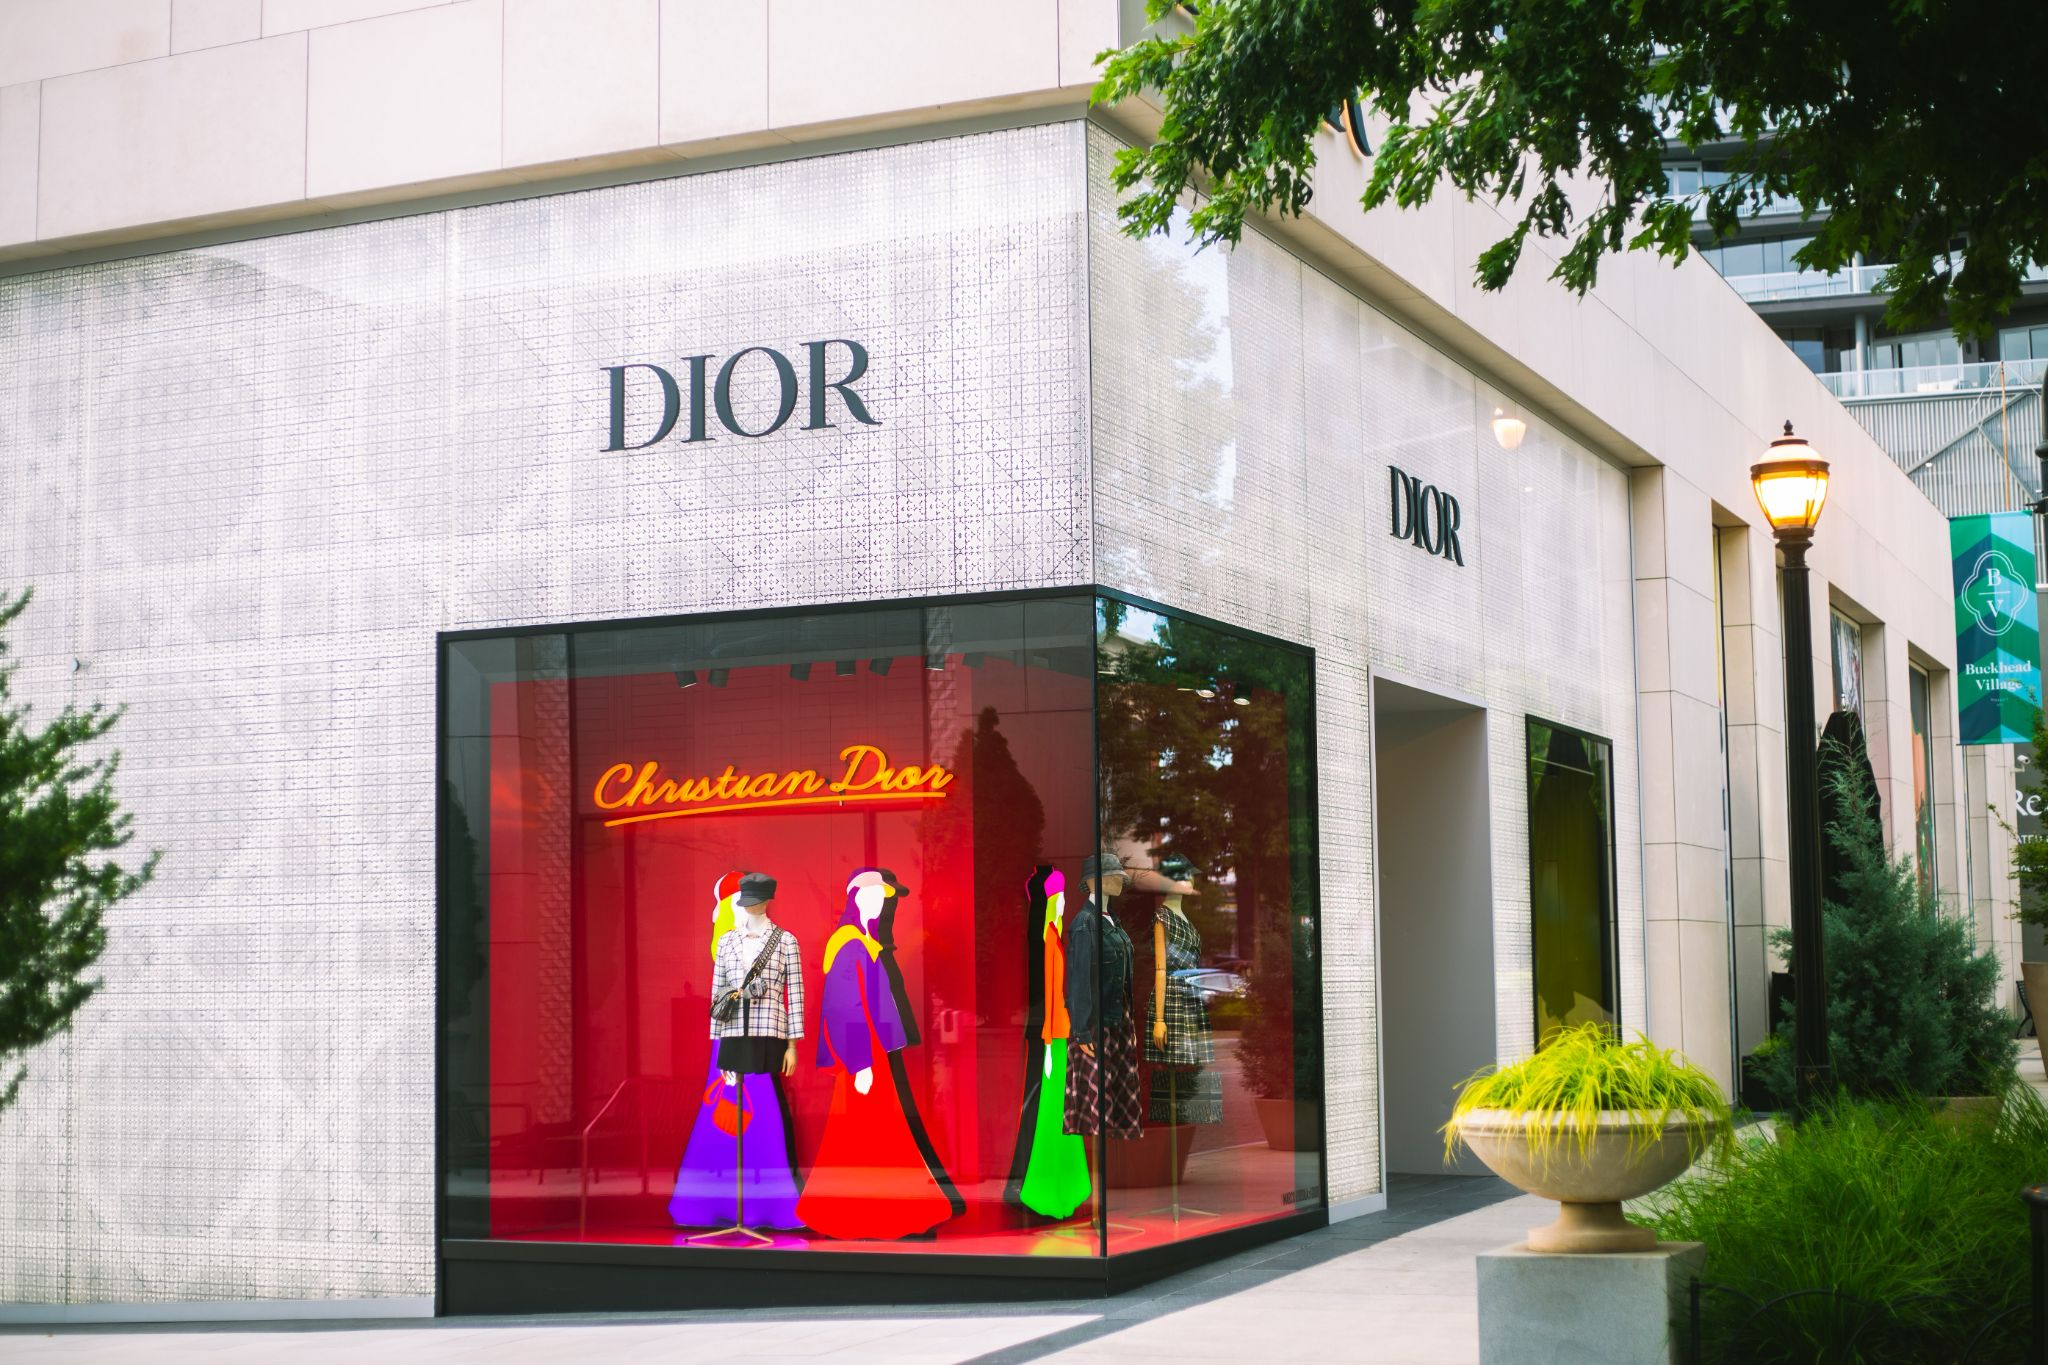 Example of DIOR visual merchandising in the form of a shop window display